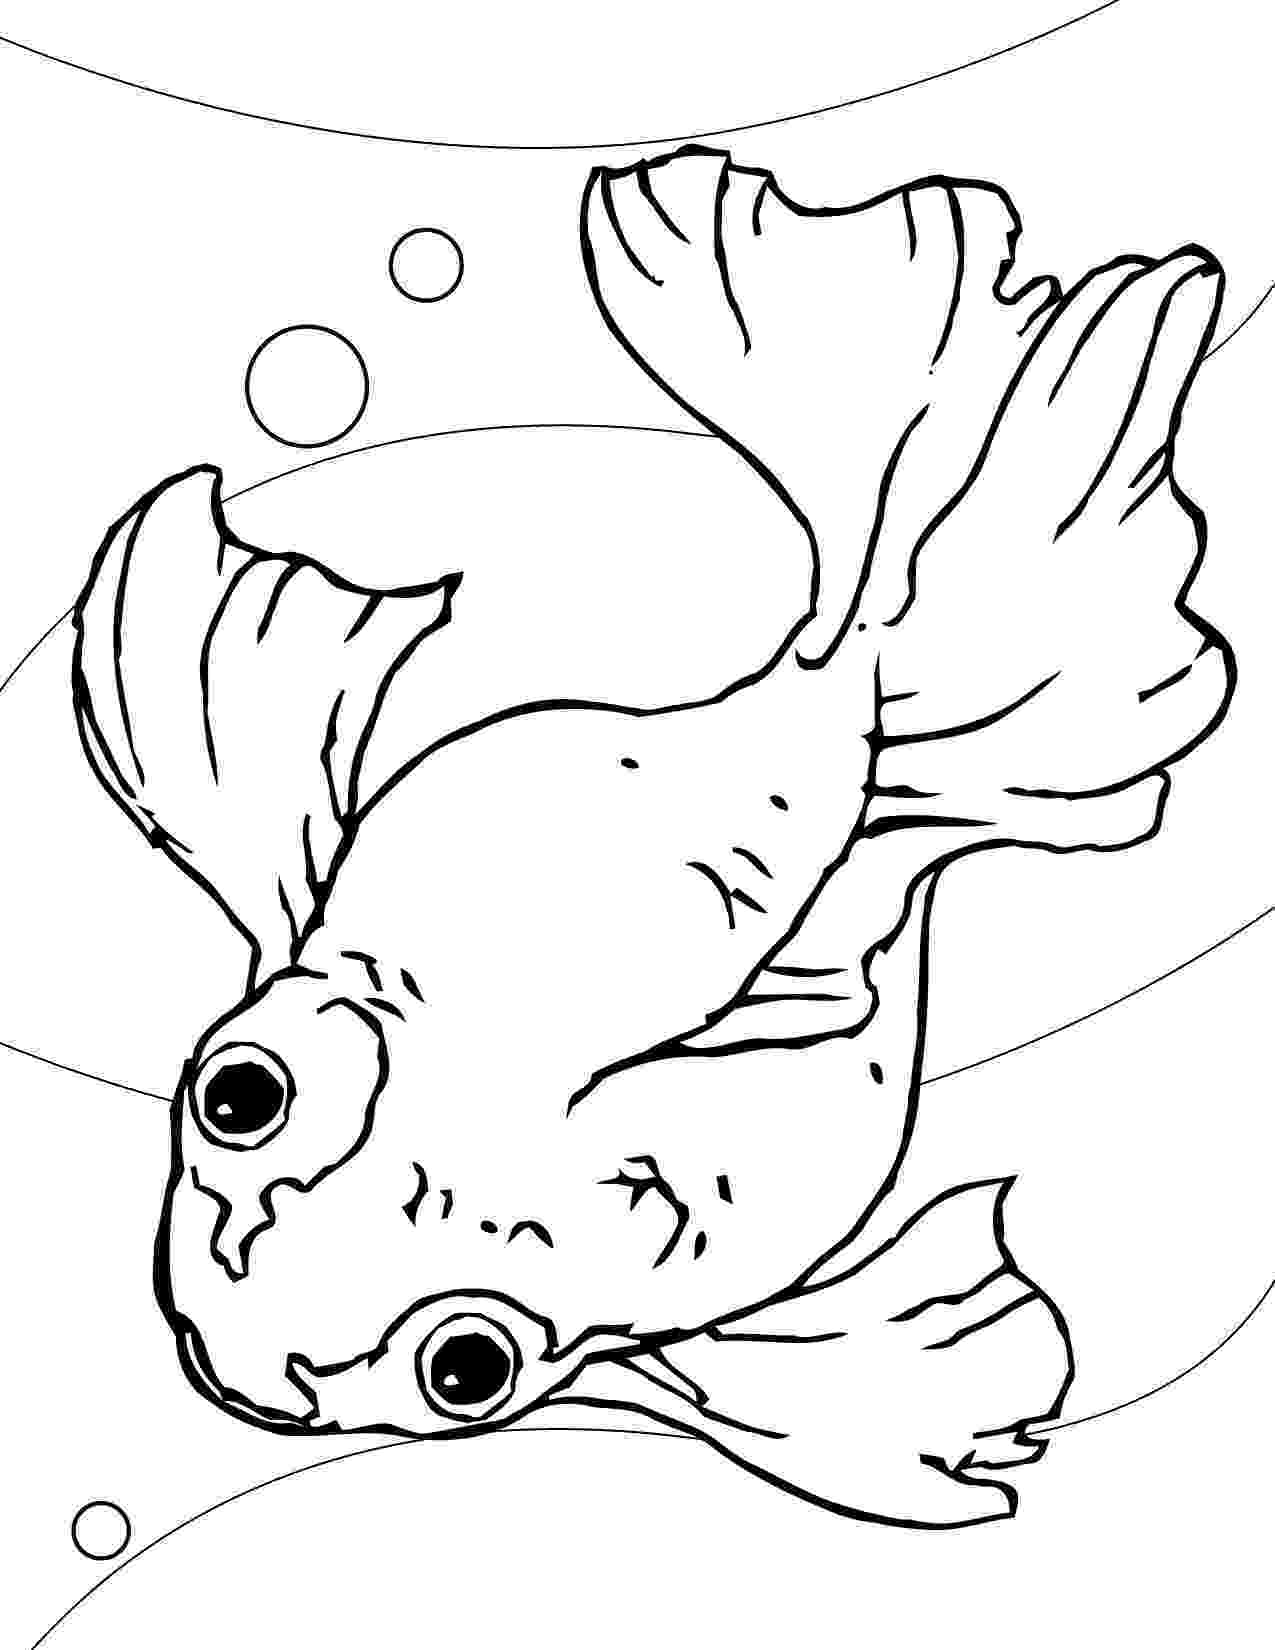 goldfish coloring page goldfish coloring pages team colors coloring goldfish page